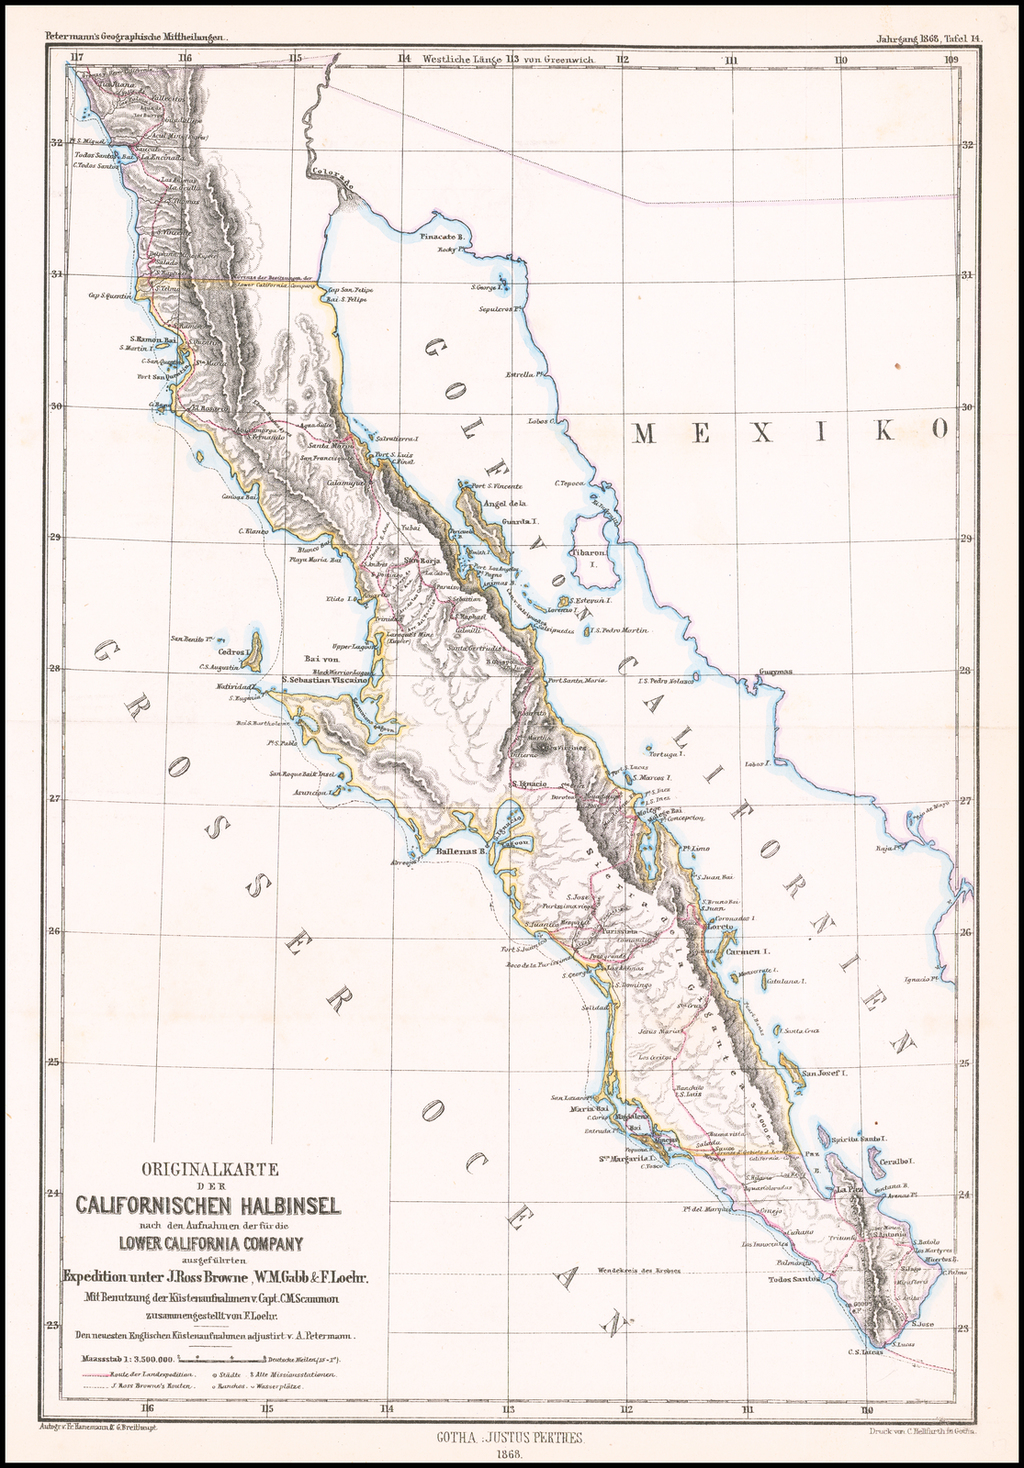 Originalkarte Der Californischen Halbinsel nach den Aufnachmen der fur die Lower California Company ausgefurthen Expedition unter J. Ross Brown, W.M. Gabb & F. Loeher . . . By Augustus Herman Petermann